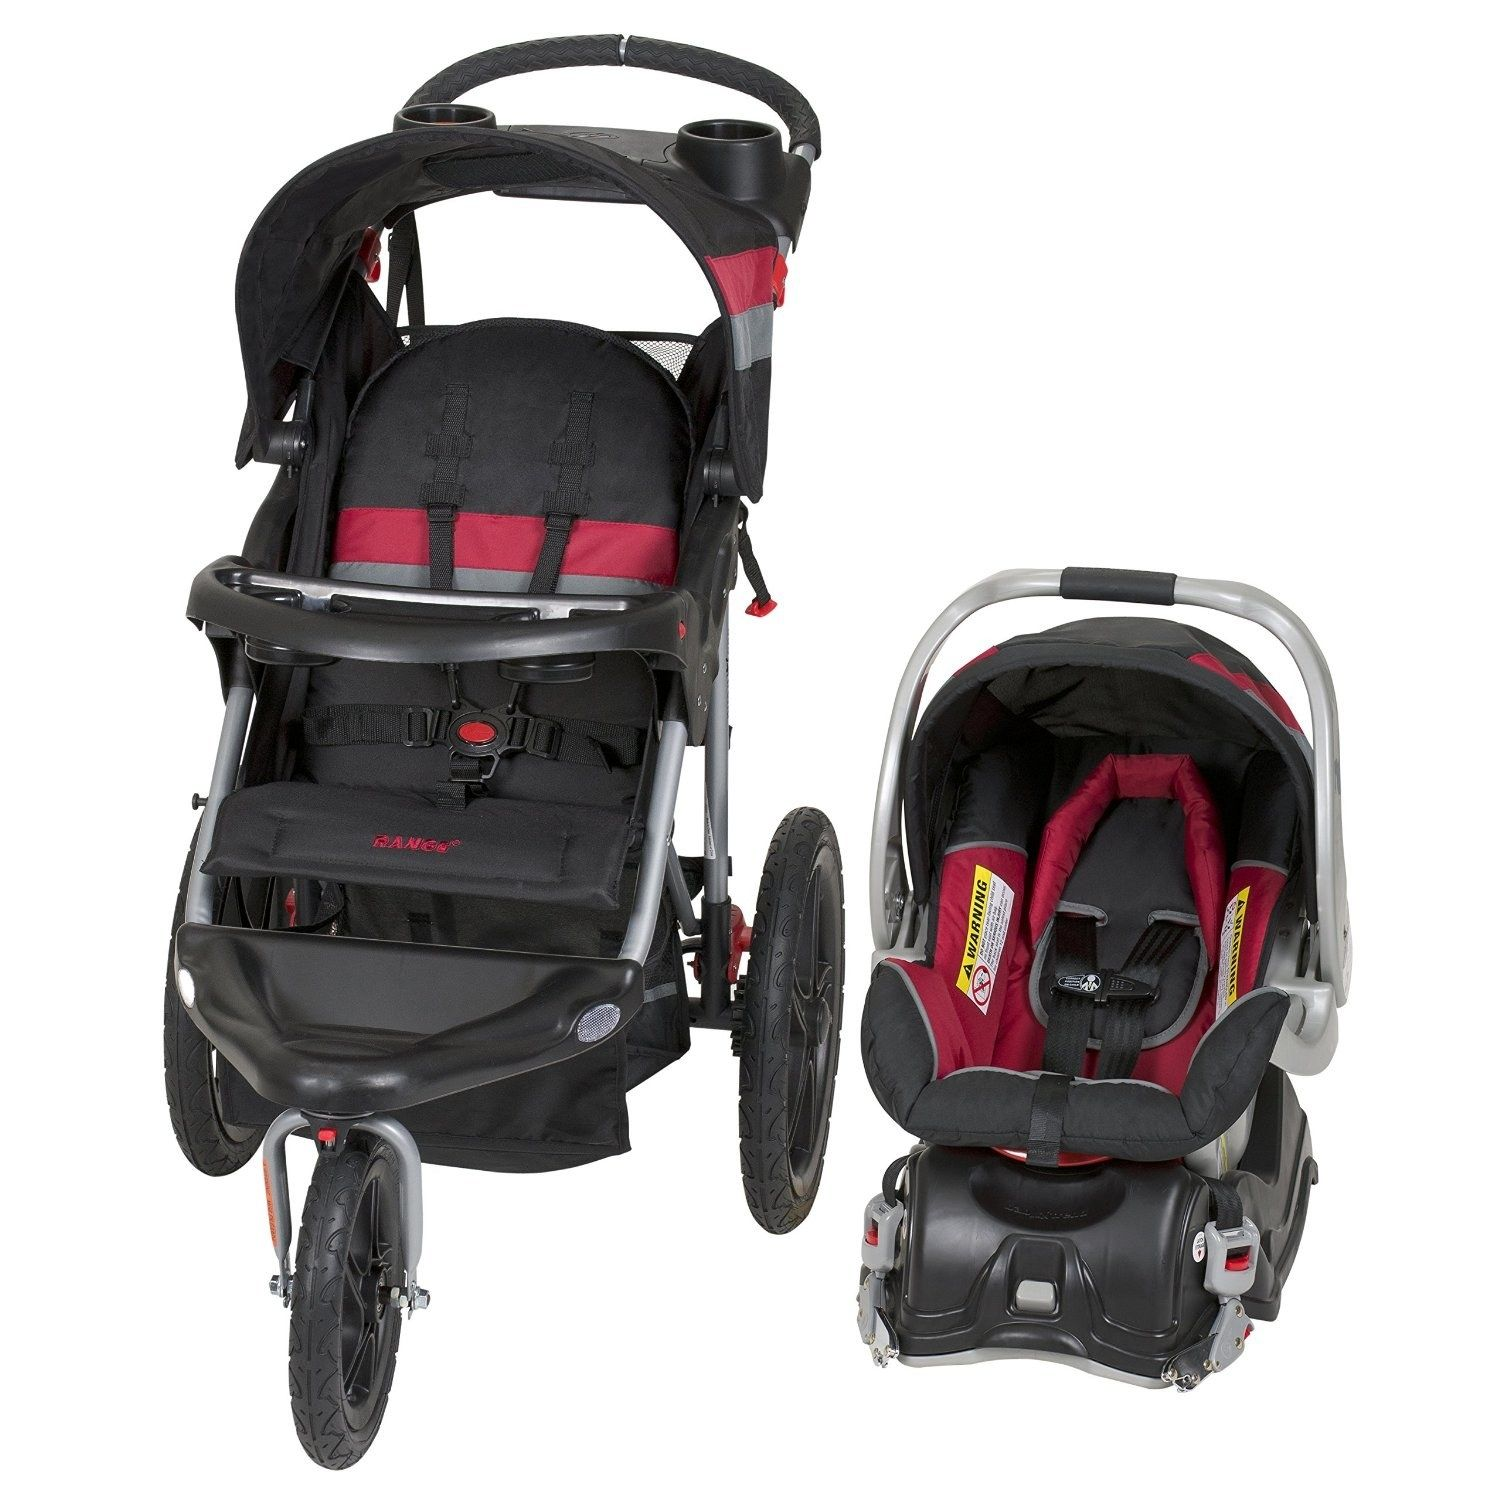 A Car Seat That Turns Into A Strolle… Baby strollers